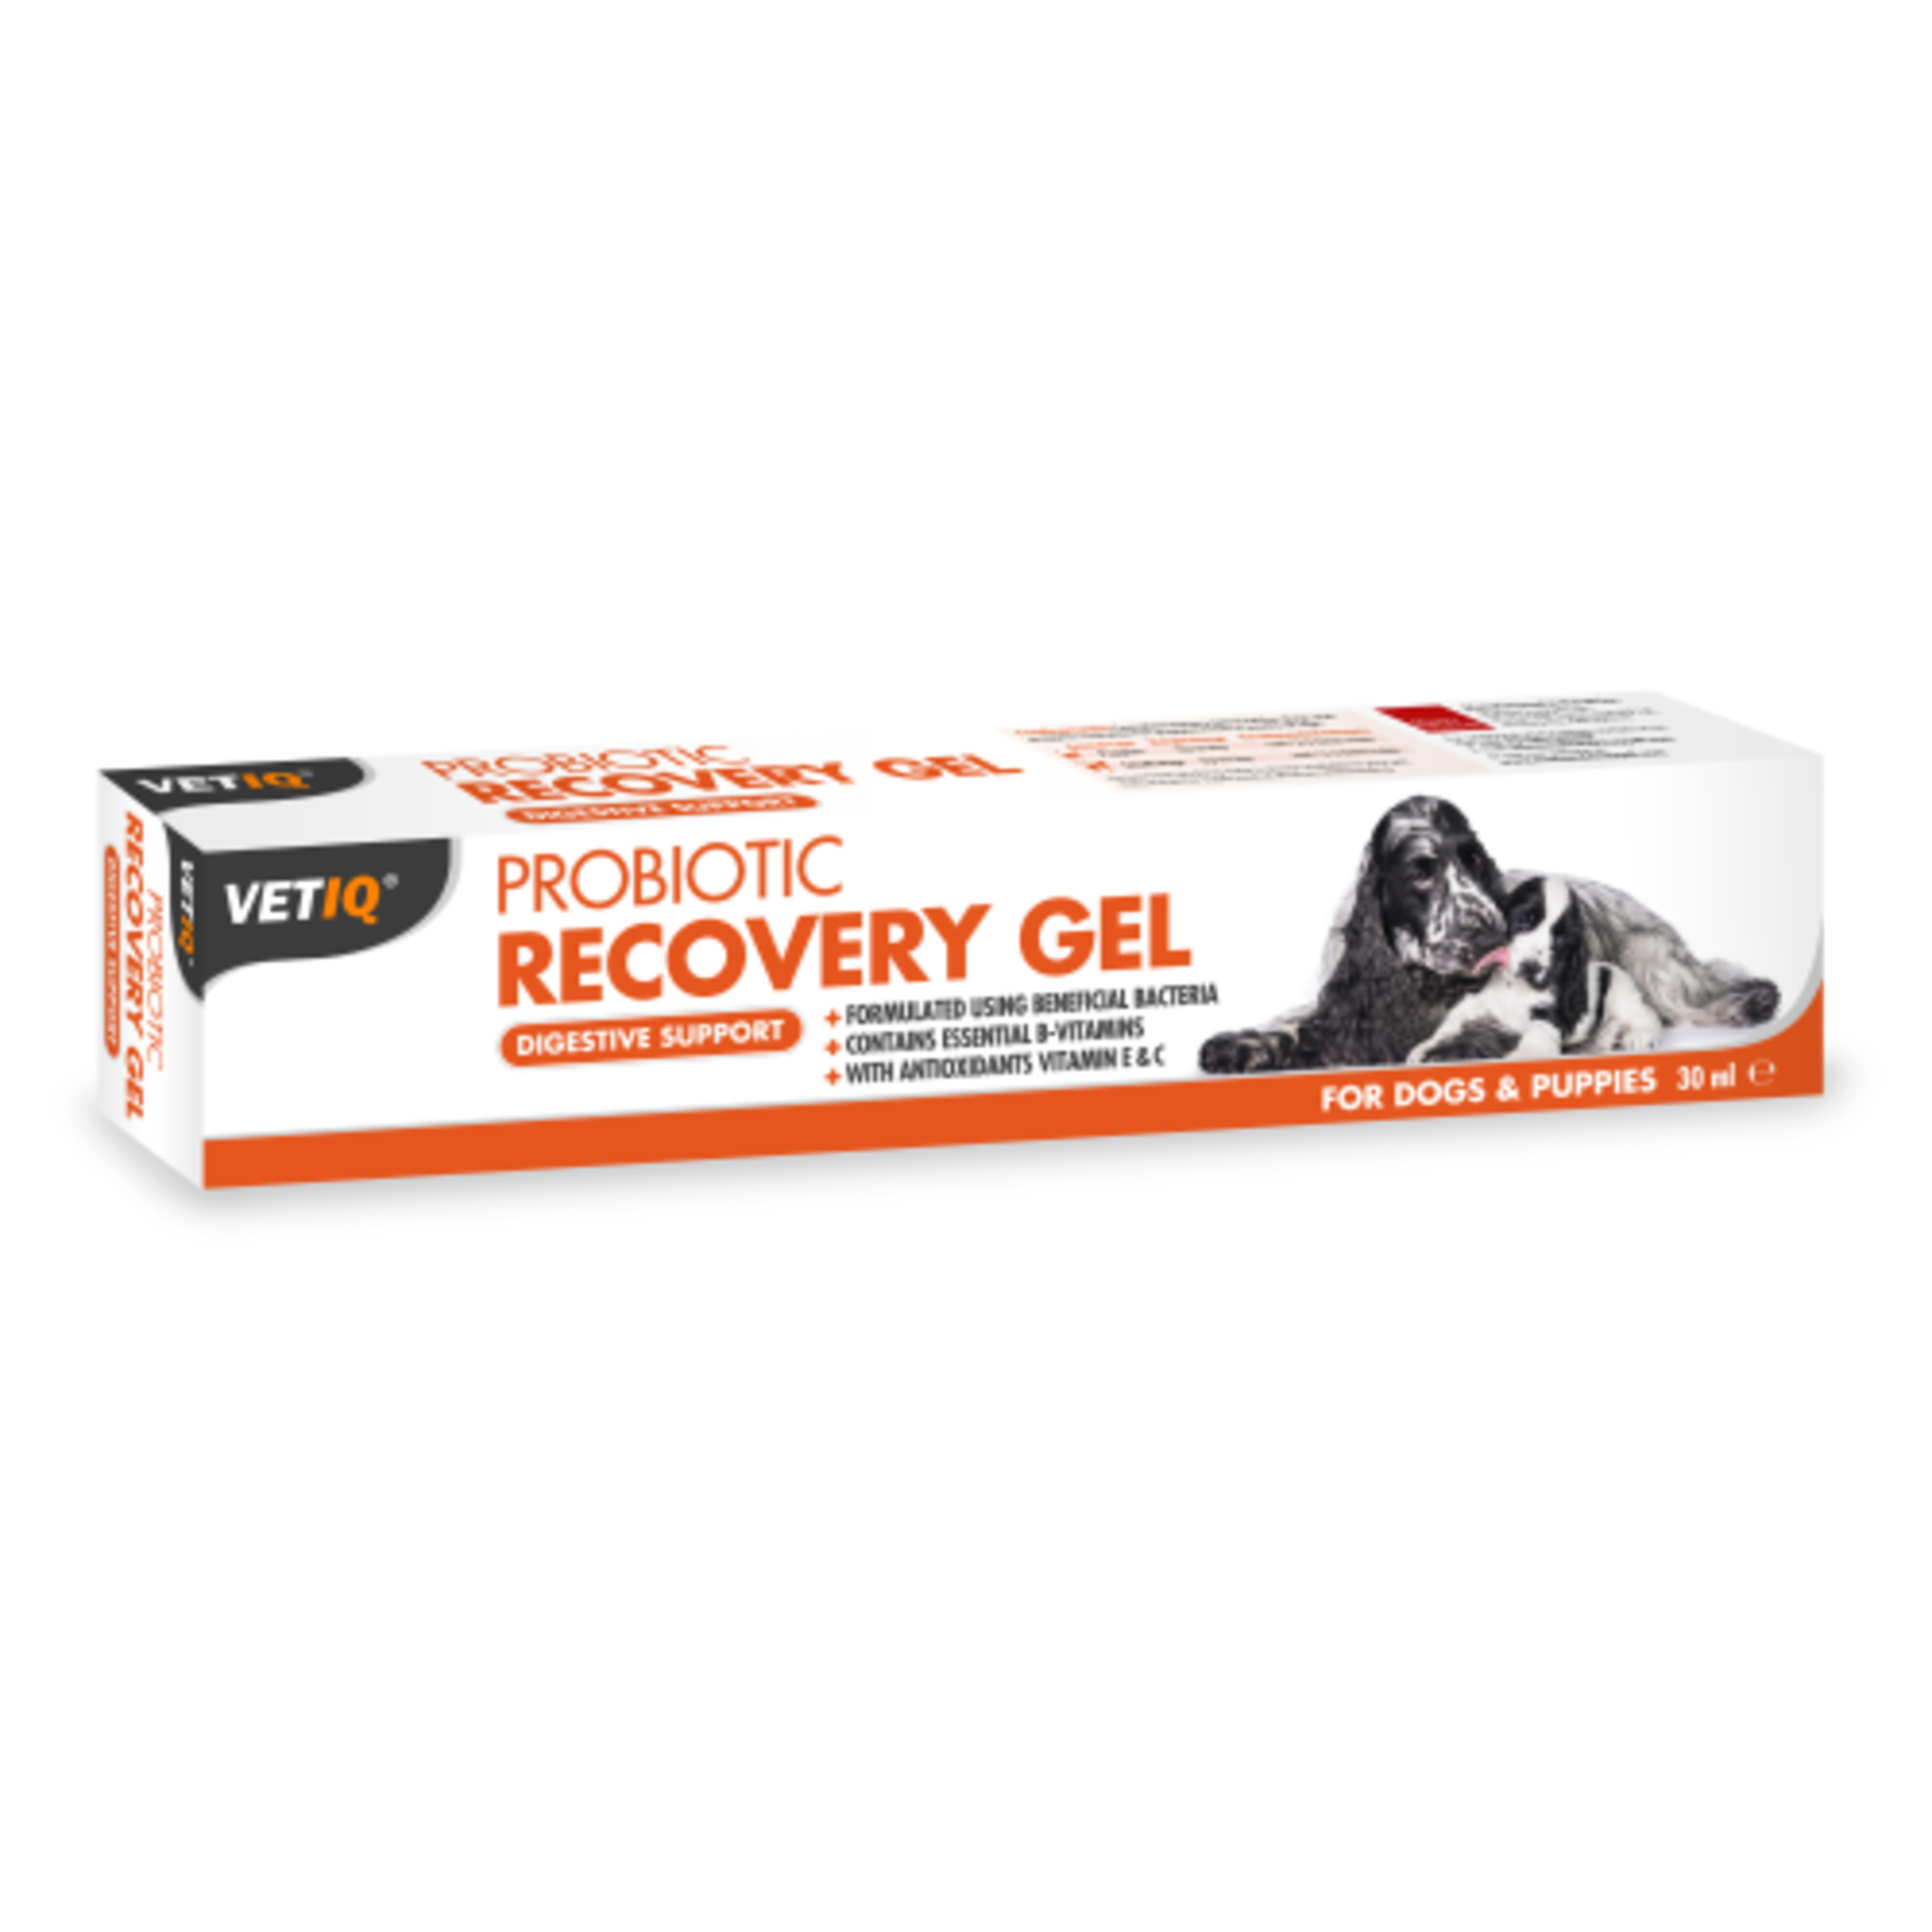 Mark & Chappell Vet IQ Probiotic Recovery Gel for Dogs